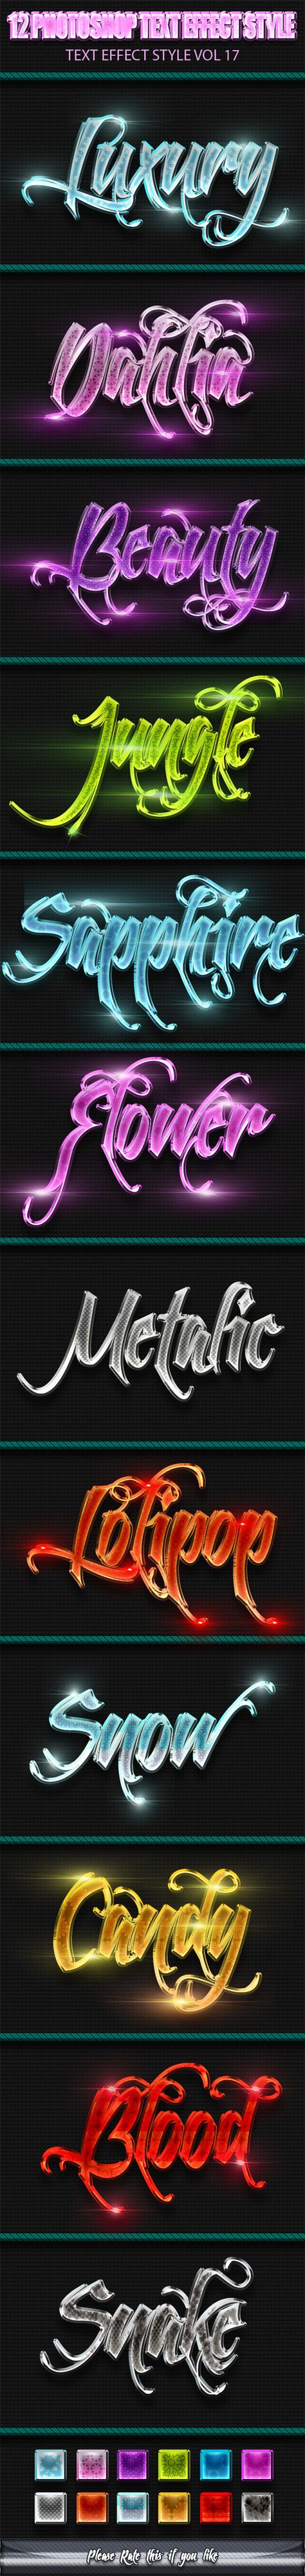 12 Photoshop Text Effect Styles Vol 17